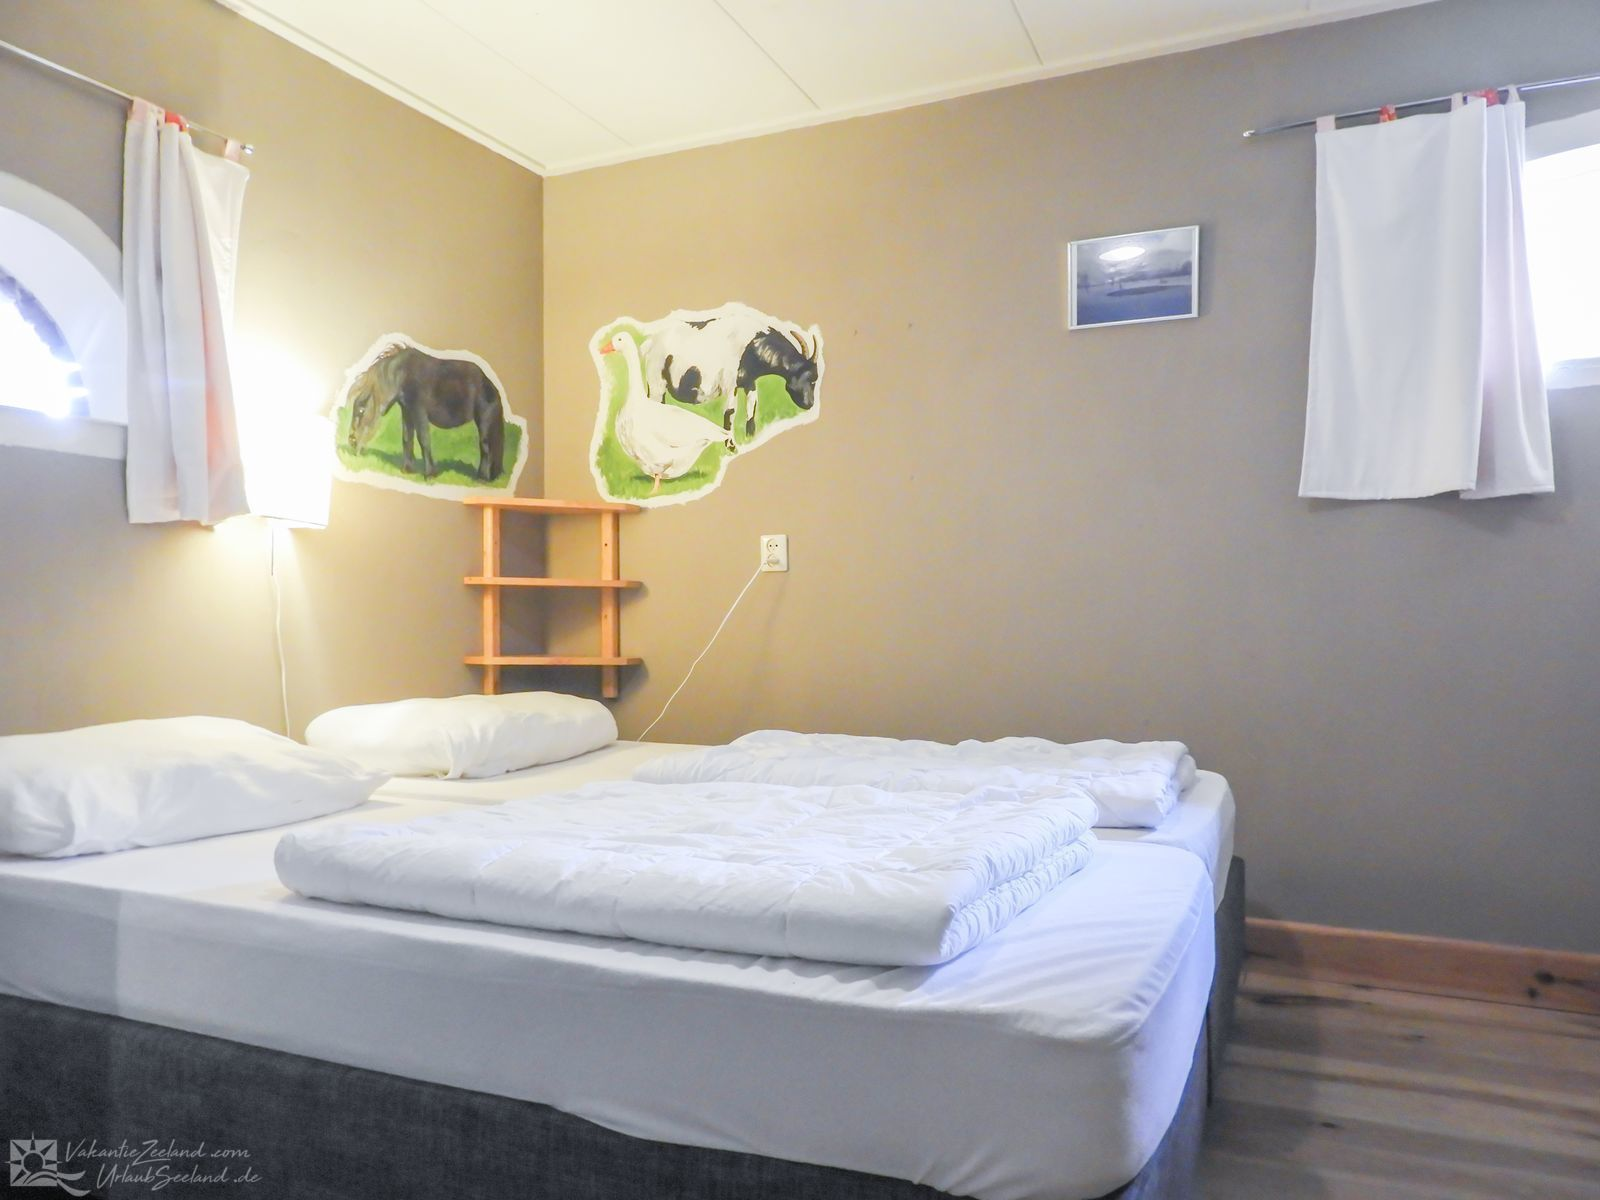 VZ505 Group accommodation Biggekerke